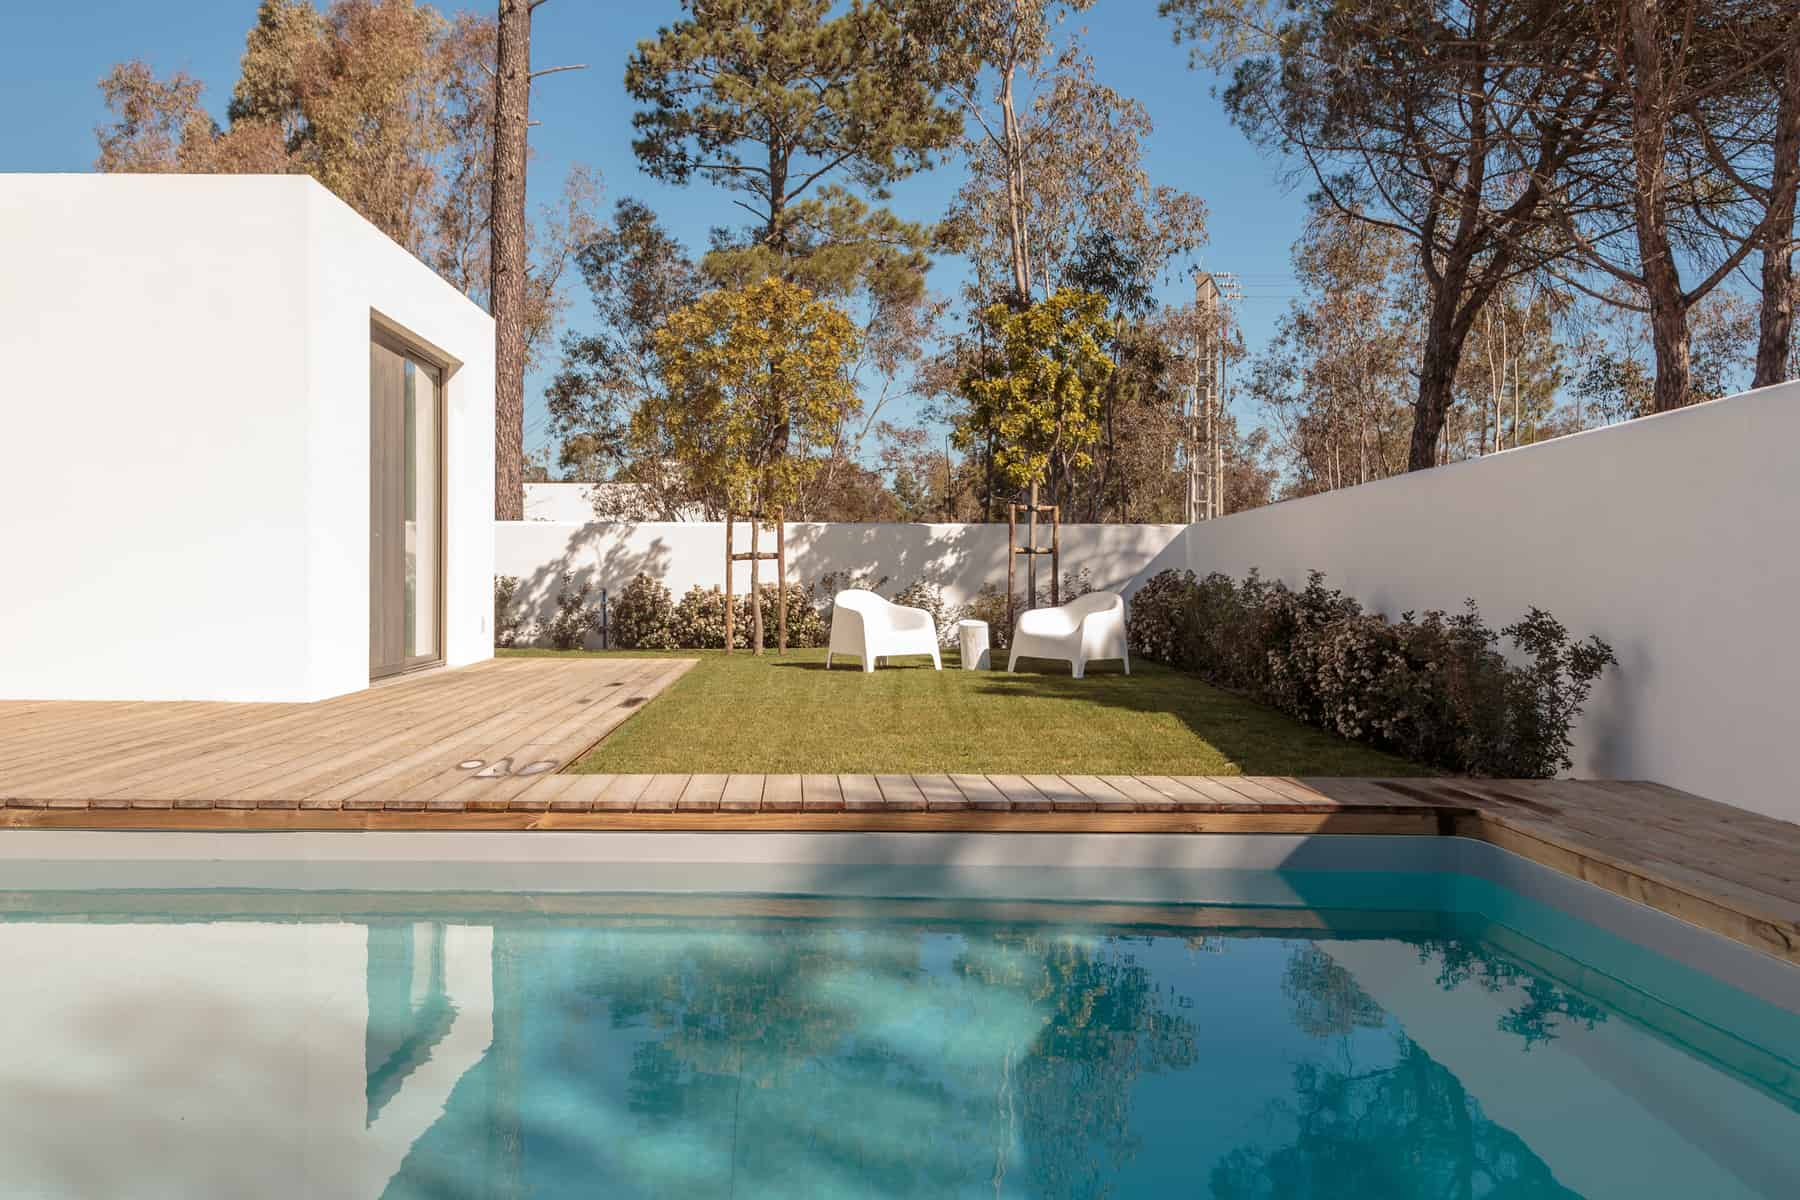 Modern house with garden swimming pool and wooden deck and garden room pool house